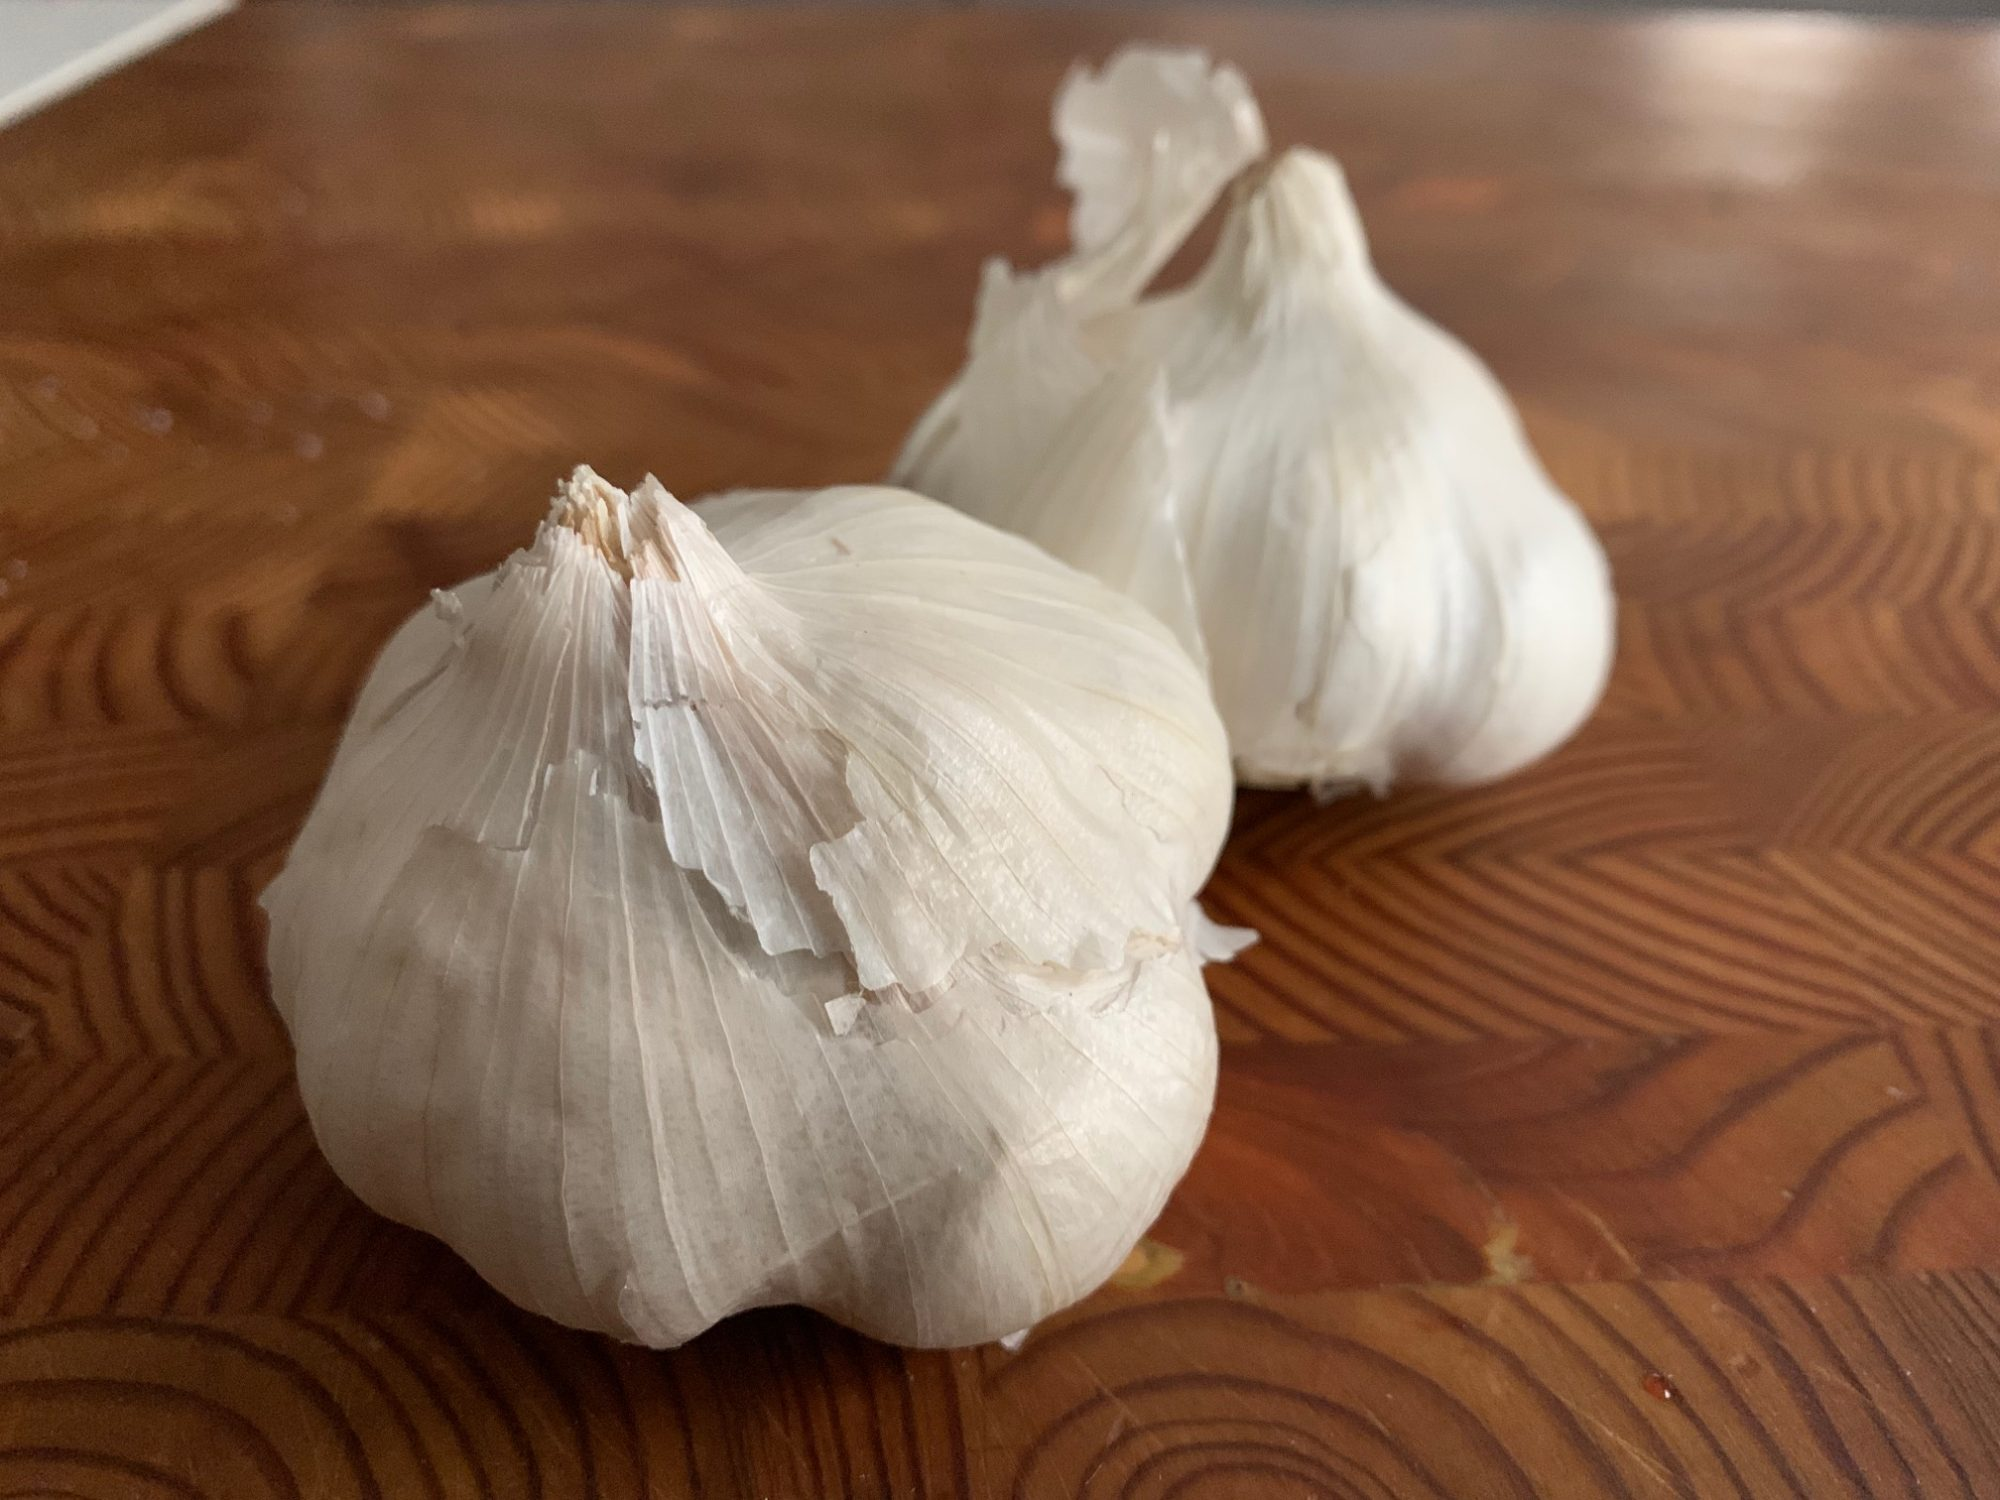 garlic with skin on